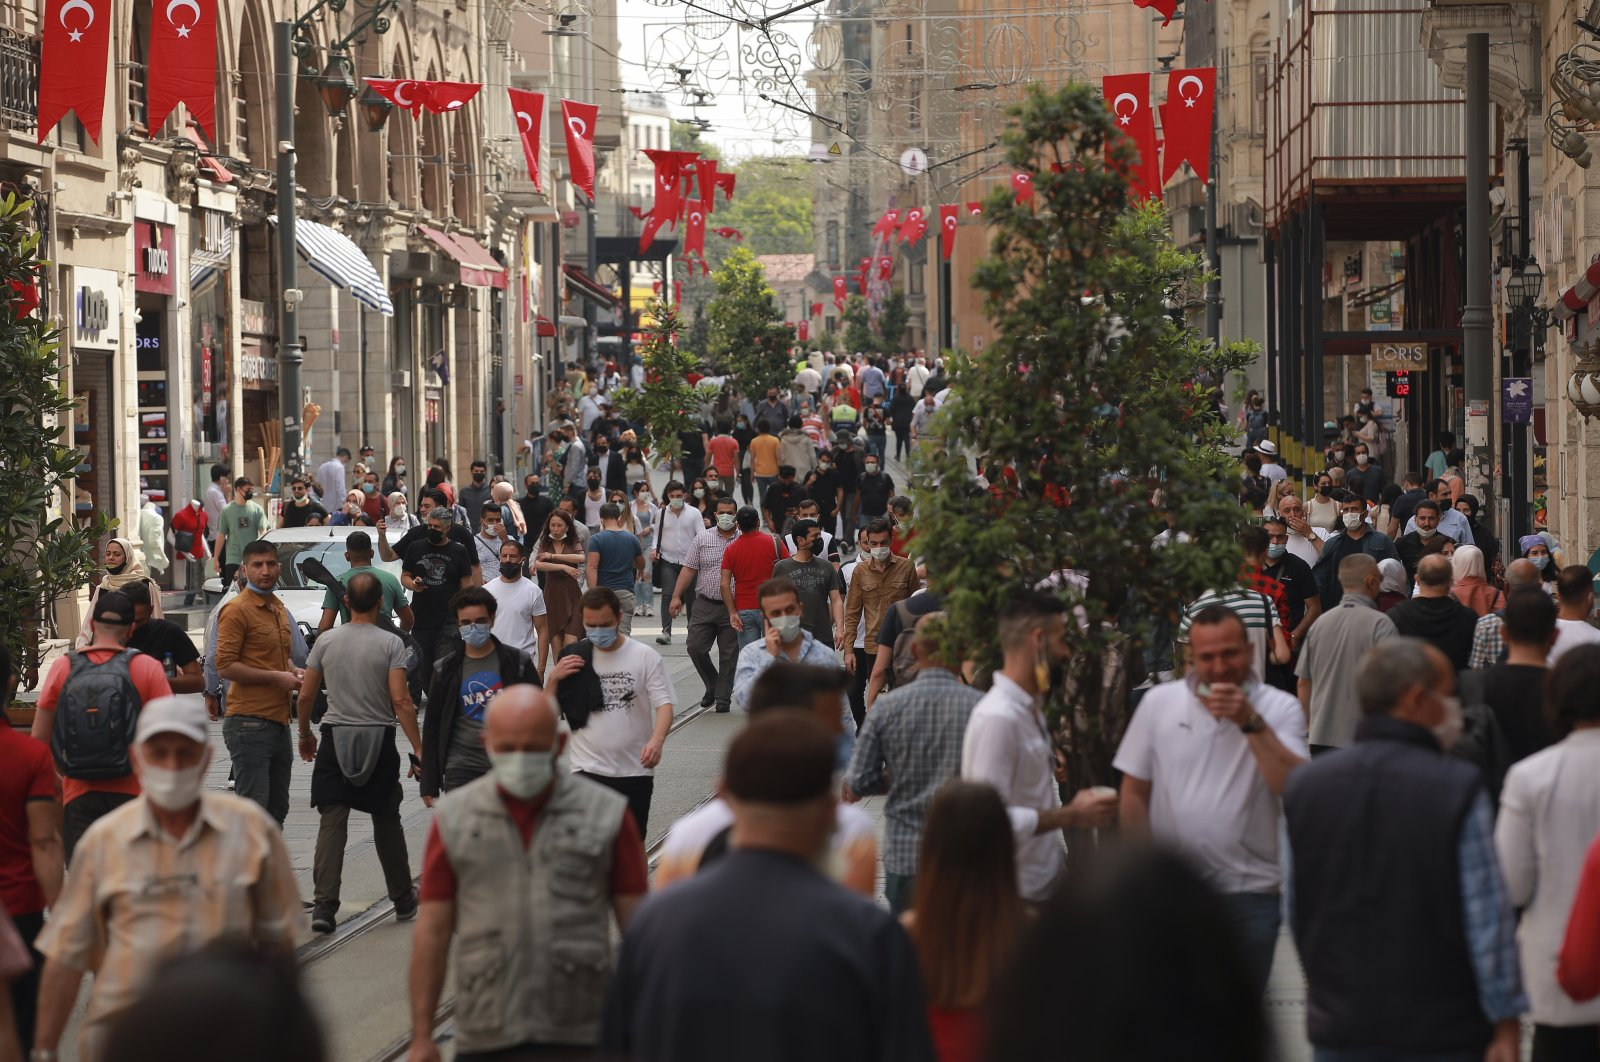 People walk in Istiklal Street, the main shopping street of Istanbul, Turkey, May 28, 2021. (AP Photo)